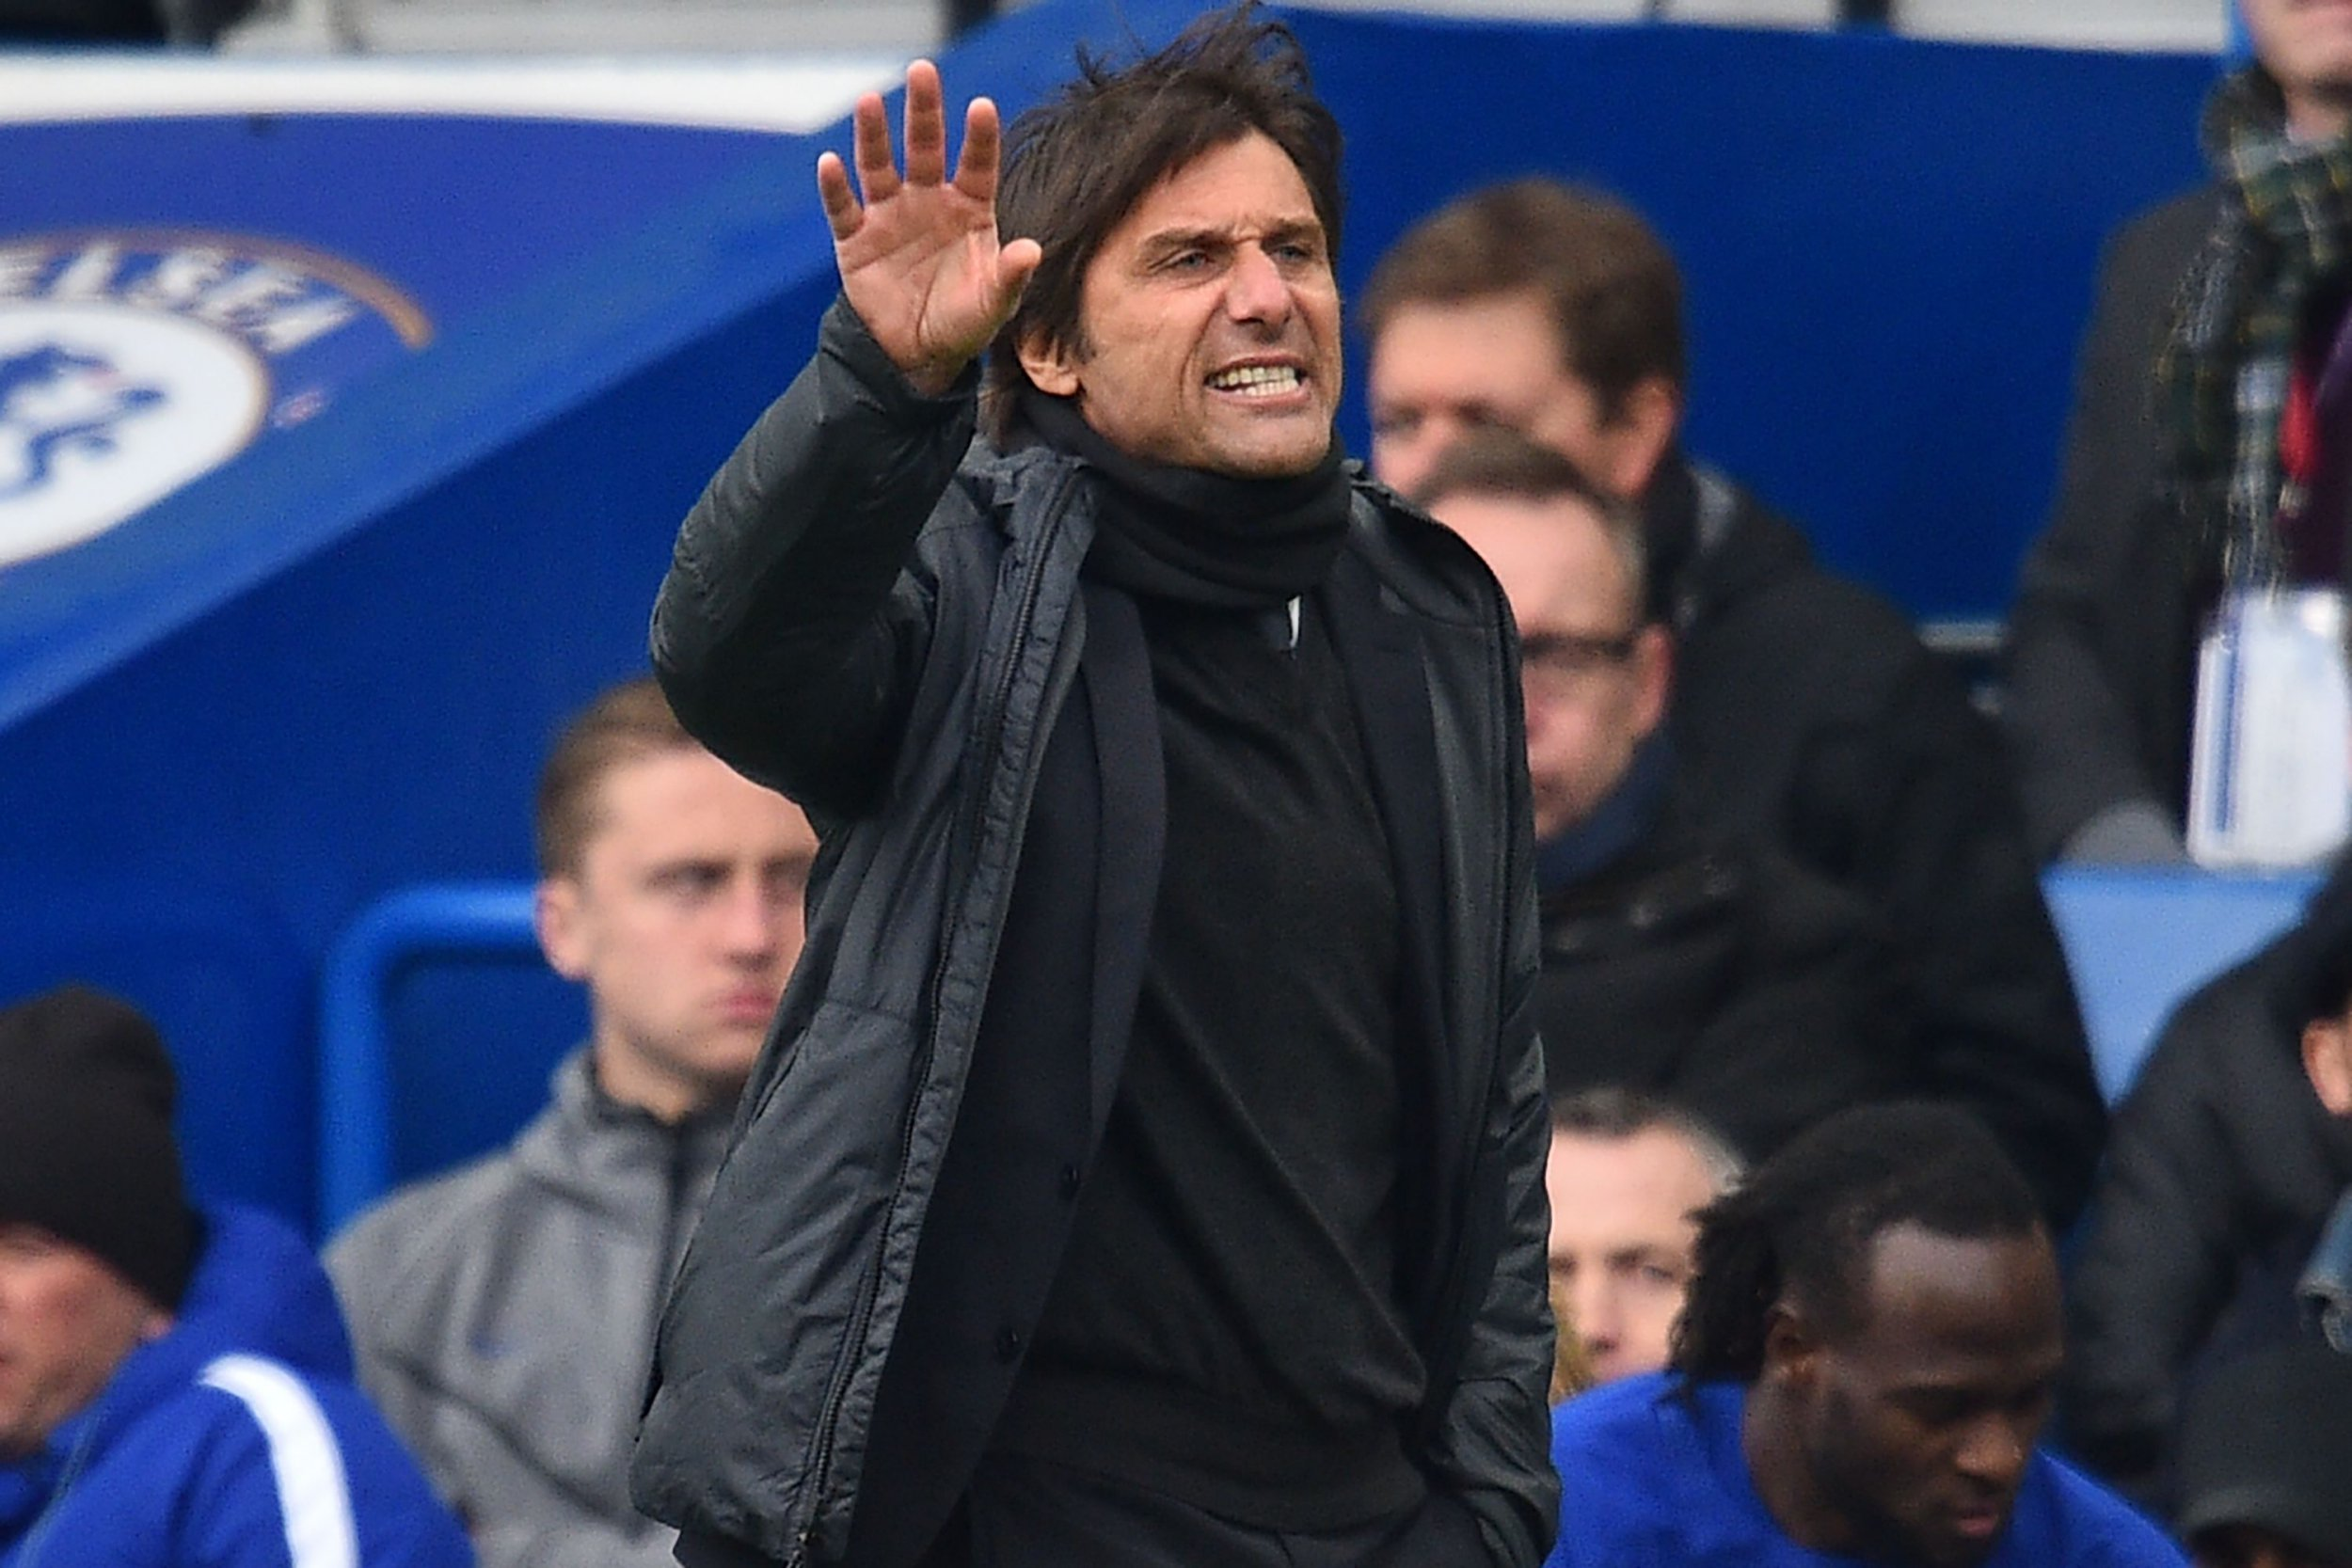 Chelsea's Italian head coach Antonio Conte gestures on the touchline during the English Premier League football match between Chelsea and Tottenham Hotspur at Stamford Bridge in London on April 1, 2018. Tottenham won the game 3-1. / AFP PHOTO / Glyn KIRK / RESTRICTED TO EDITORIAL USE. No use with unauthorized audio, video, data, fixture lists, club/league logos or 'live' services. Online in-match use limited to 75 images, no video emulation. No use in betting, games or single club/league/player publications. / GLYN KIRK/AFP/Getty Images